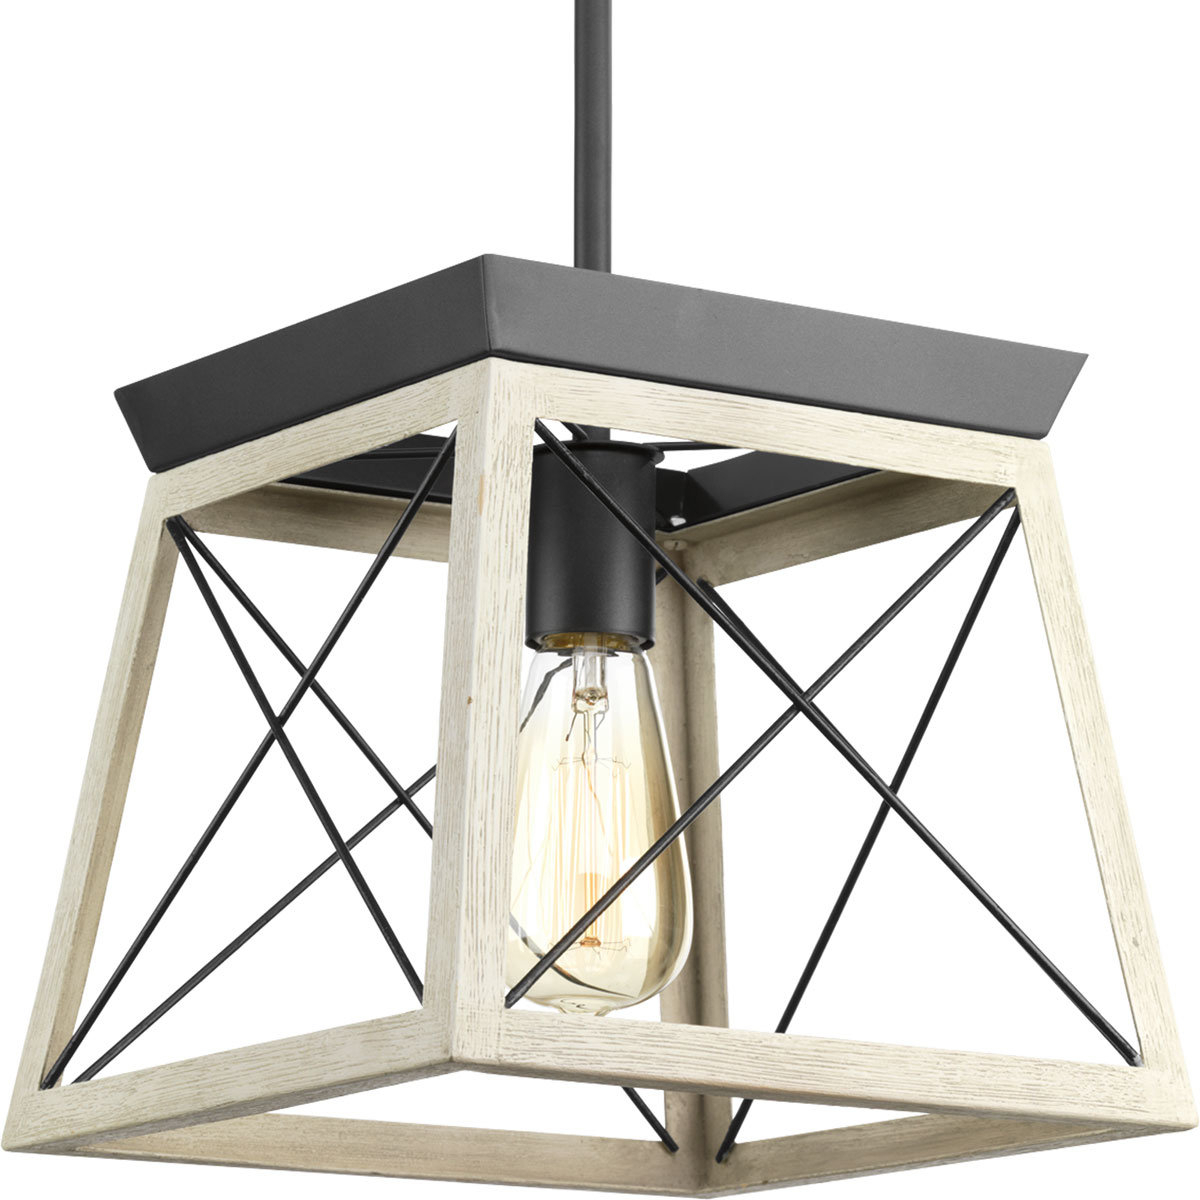 Delon 1 Light Lantern Pendant Within Delon 1 Light Lantern Geometric Pendants (Gallery 5 of 30)